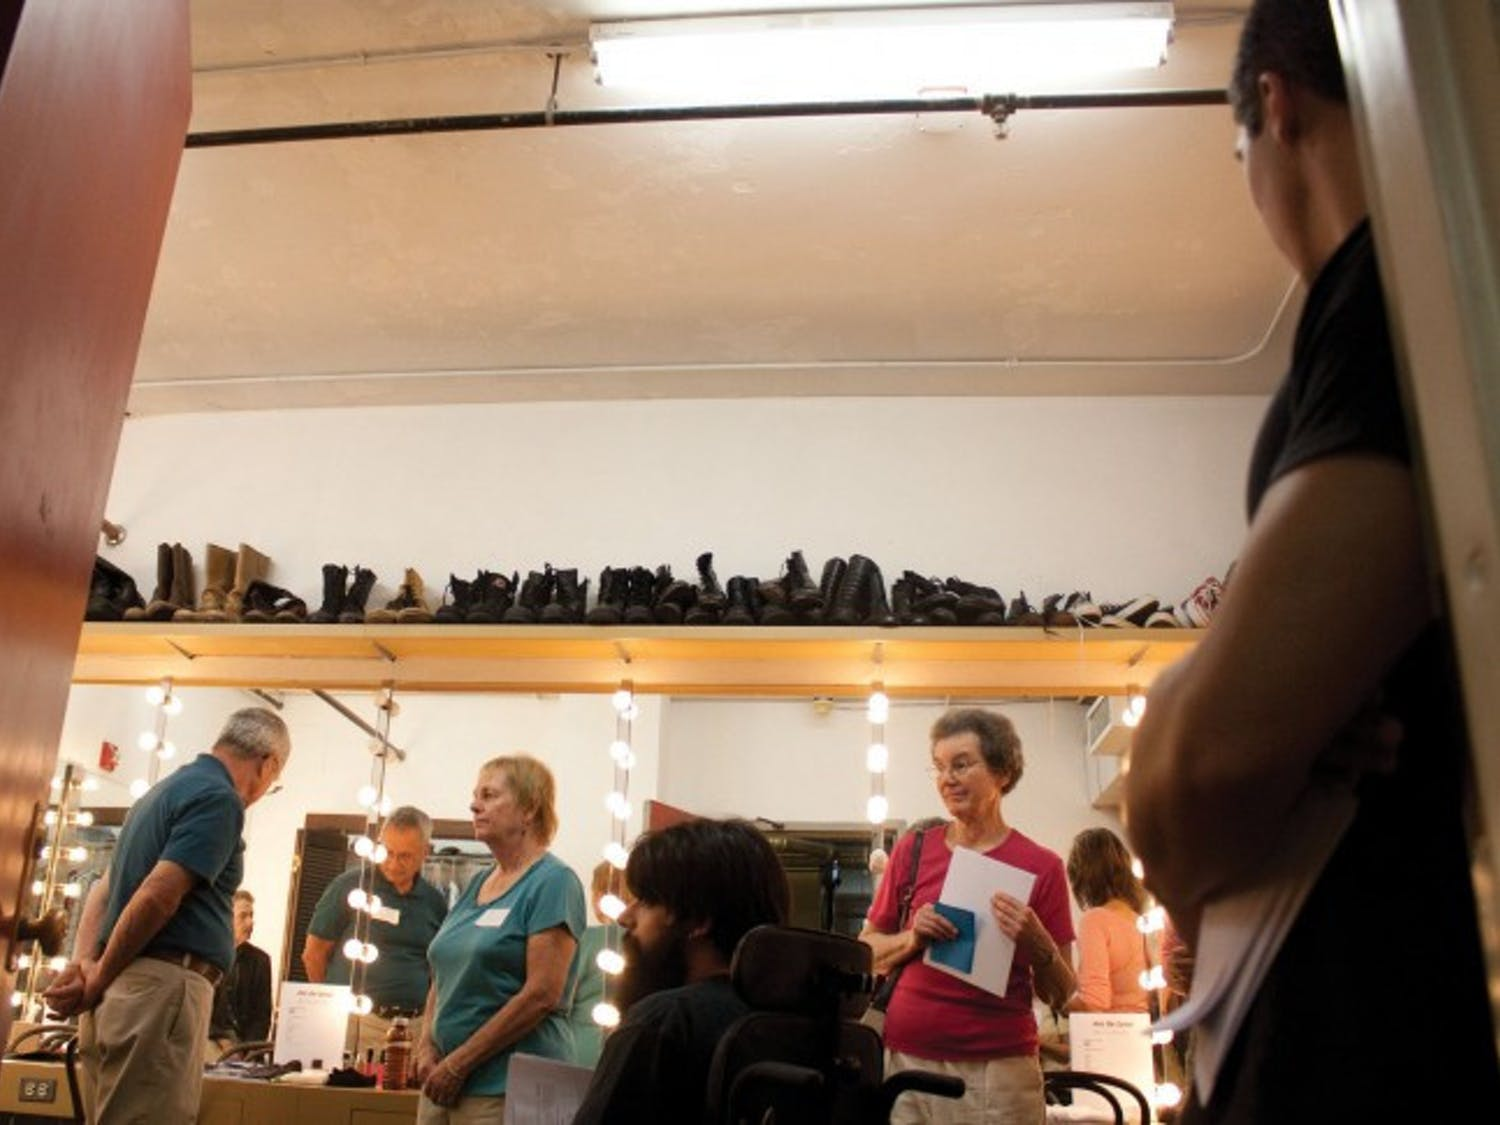 Visitors look around one of the backstage dressing rooms on the behind-the-scenes tour of the Hippodrome Theatre in downtown Gainesville on Friday.